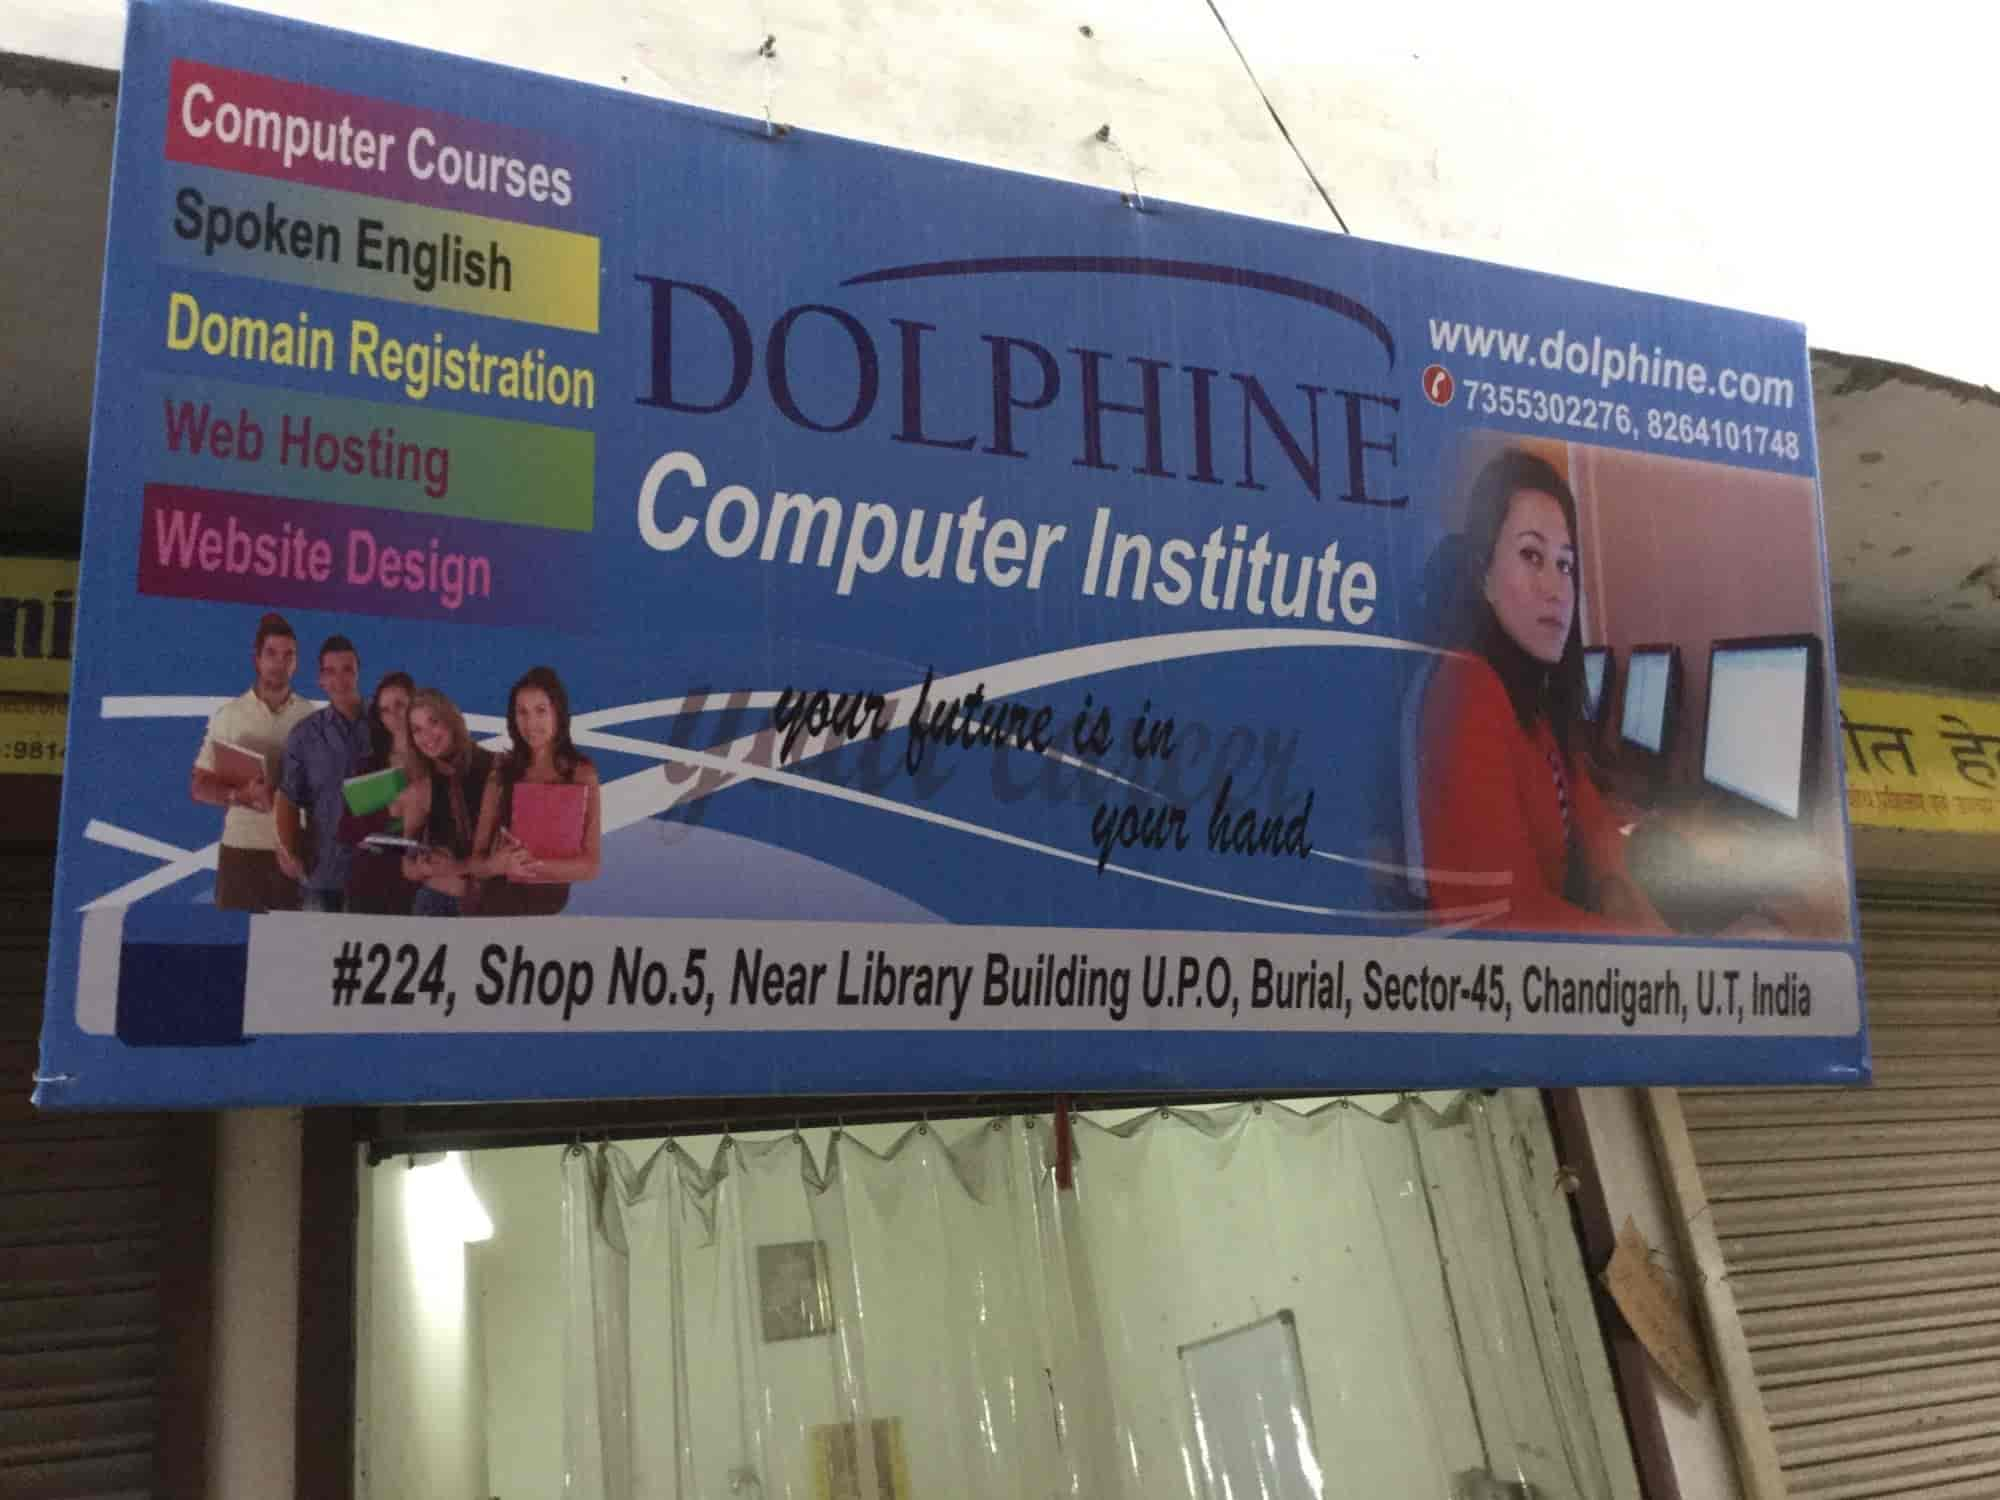 Dolphine Computer Institute, Chandigarh Sector 45 - Computer